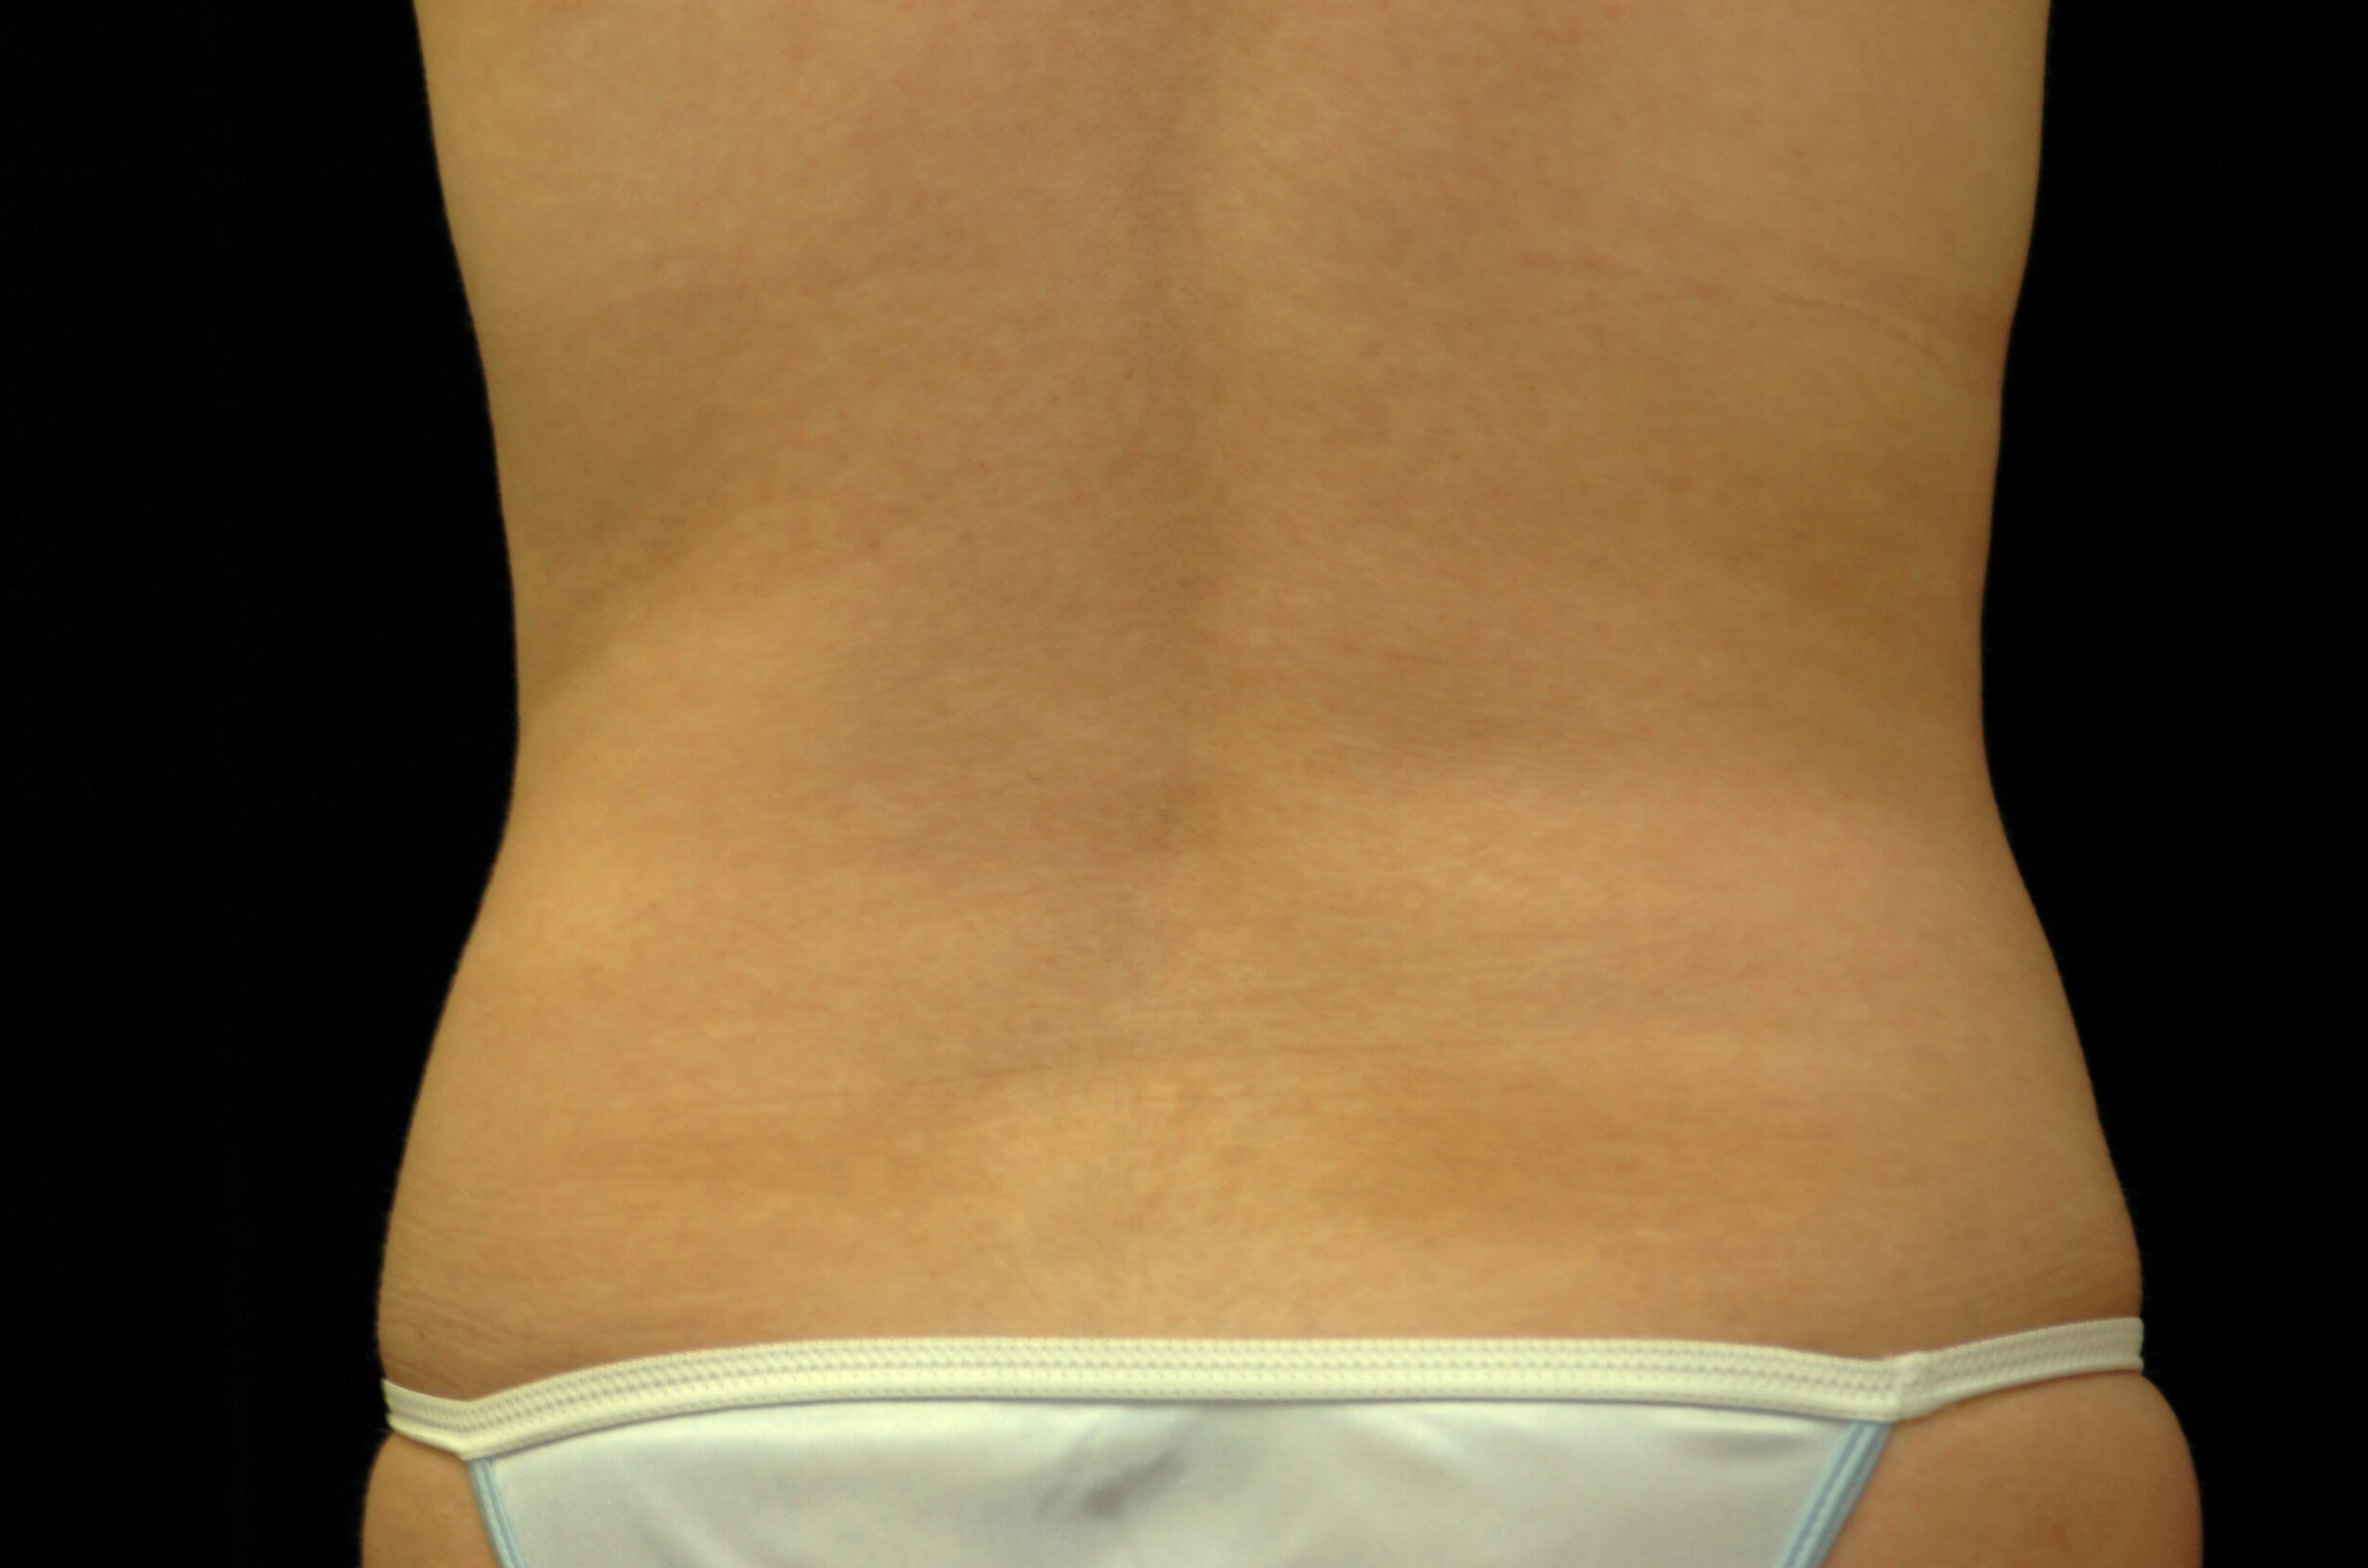 Liposuction Abdomen/Flanks Before